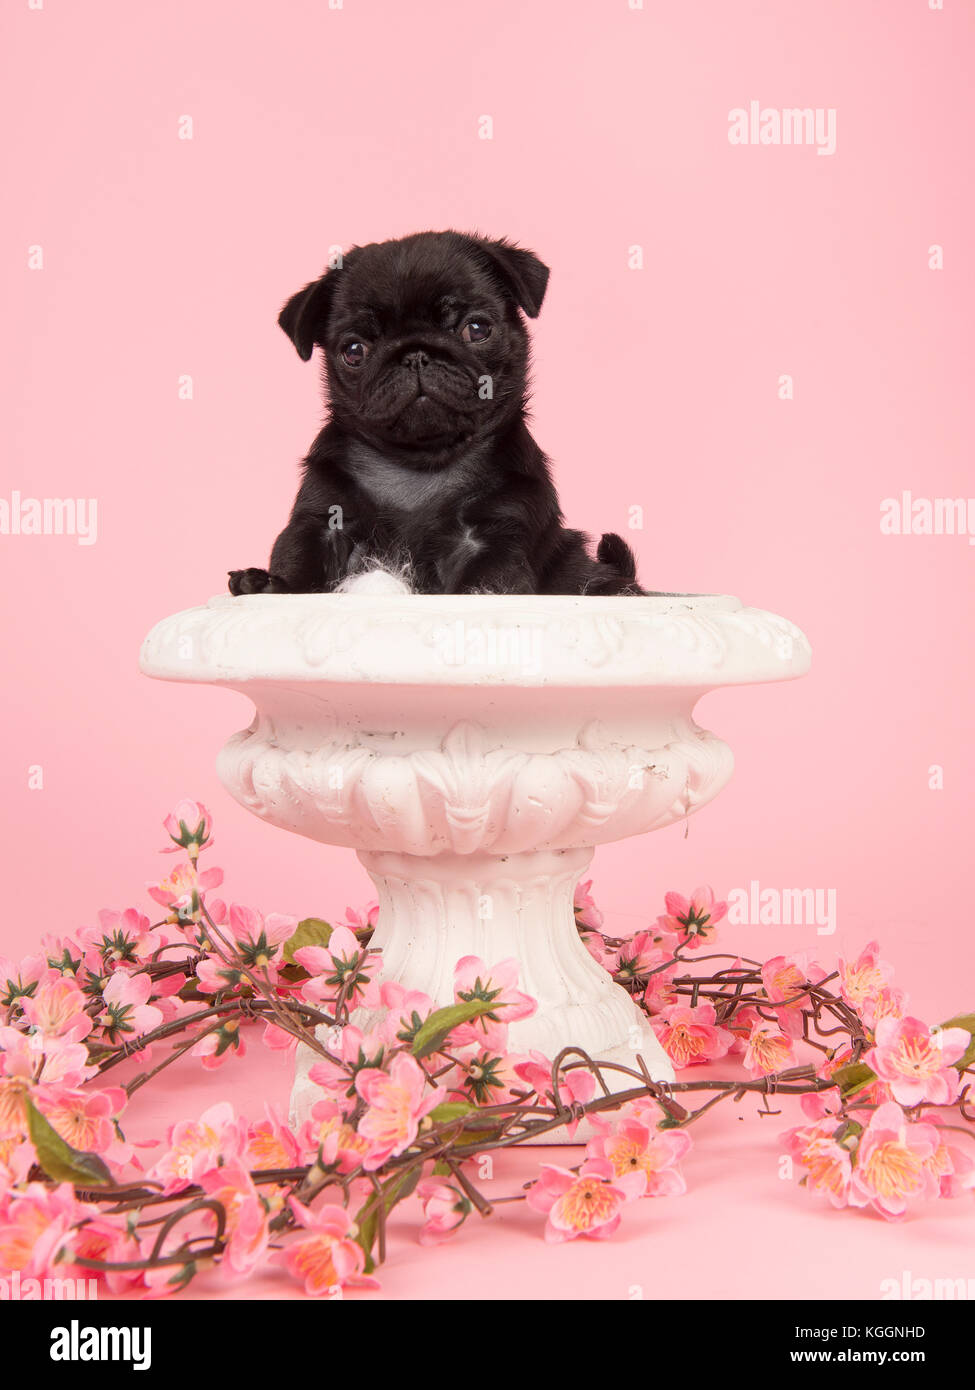 Cute black pug puppy in a white flowerpot with pink flowers on a pink background - Stock Image